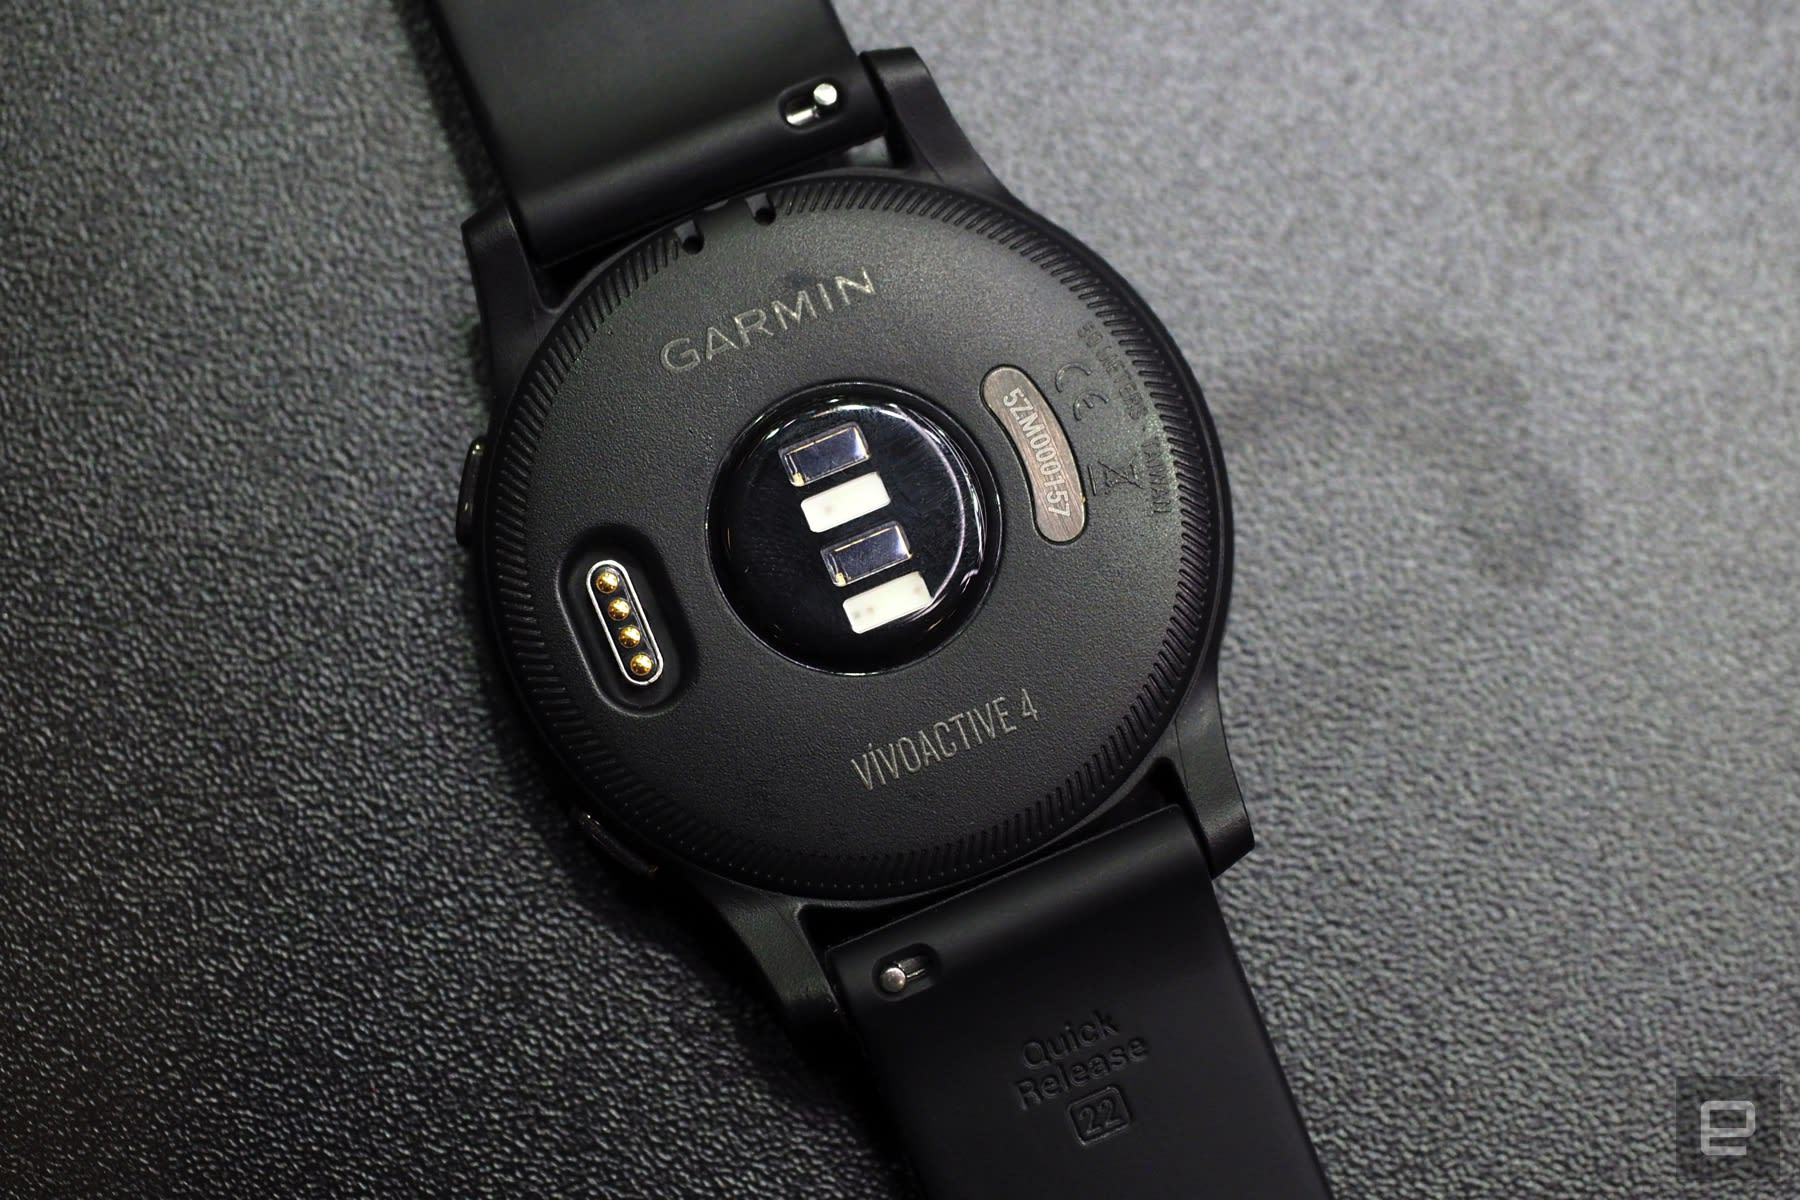 Garmin's new Vivoactive watch can track your yoga sessions